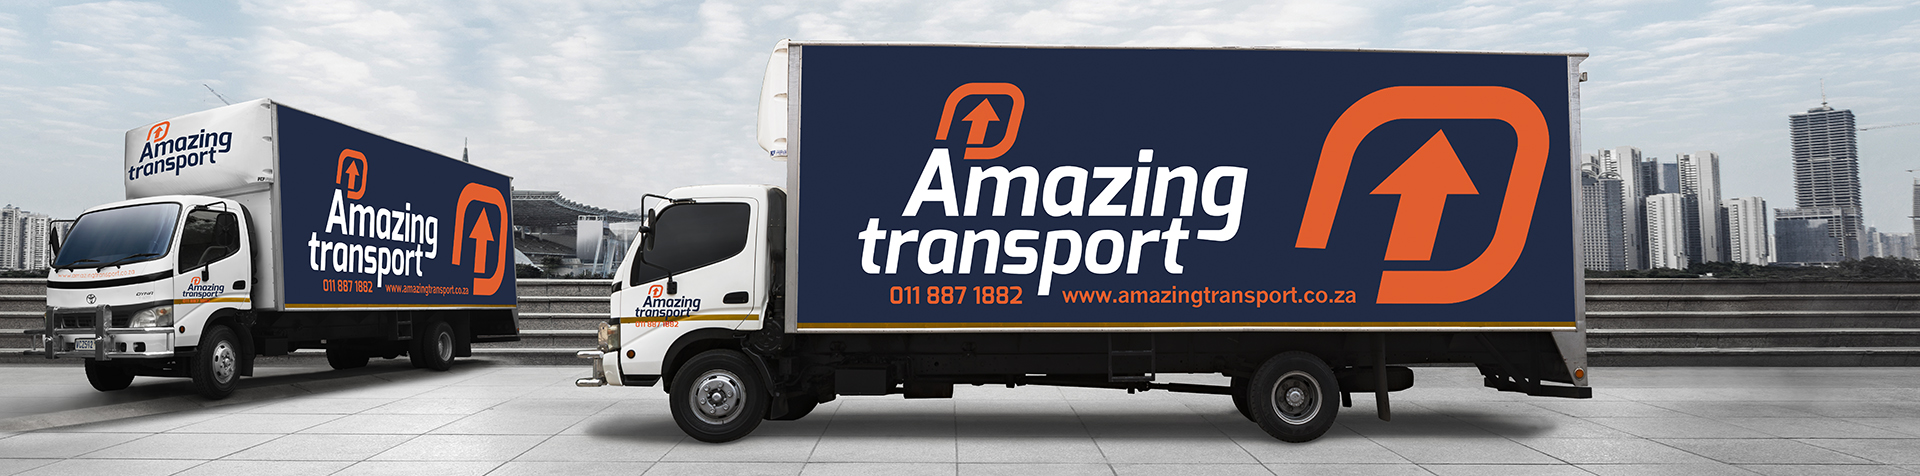 Furniture-removal-truck-Johannesburg